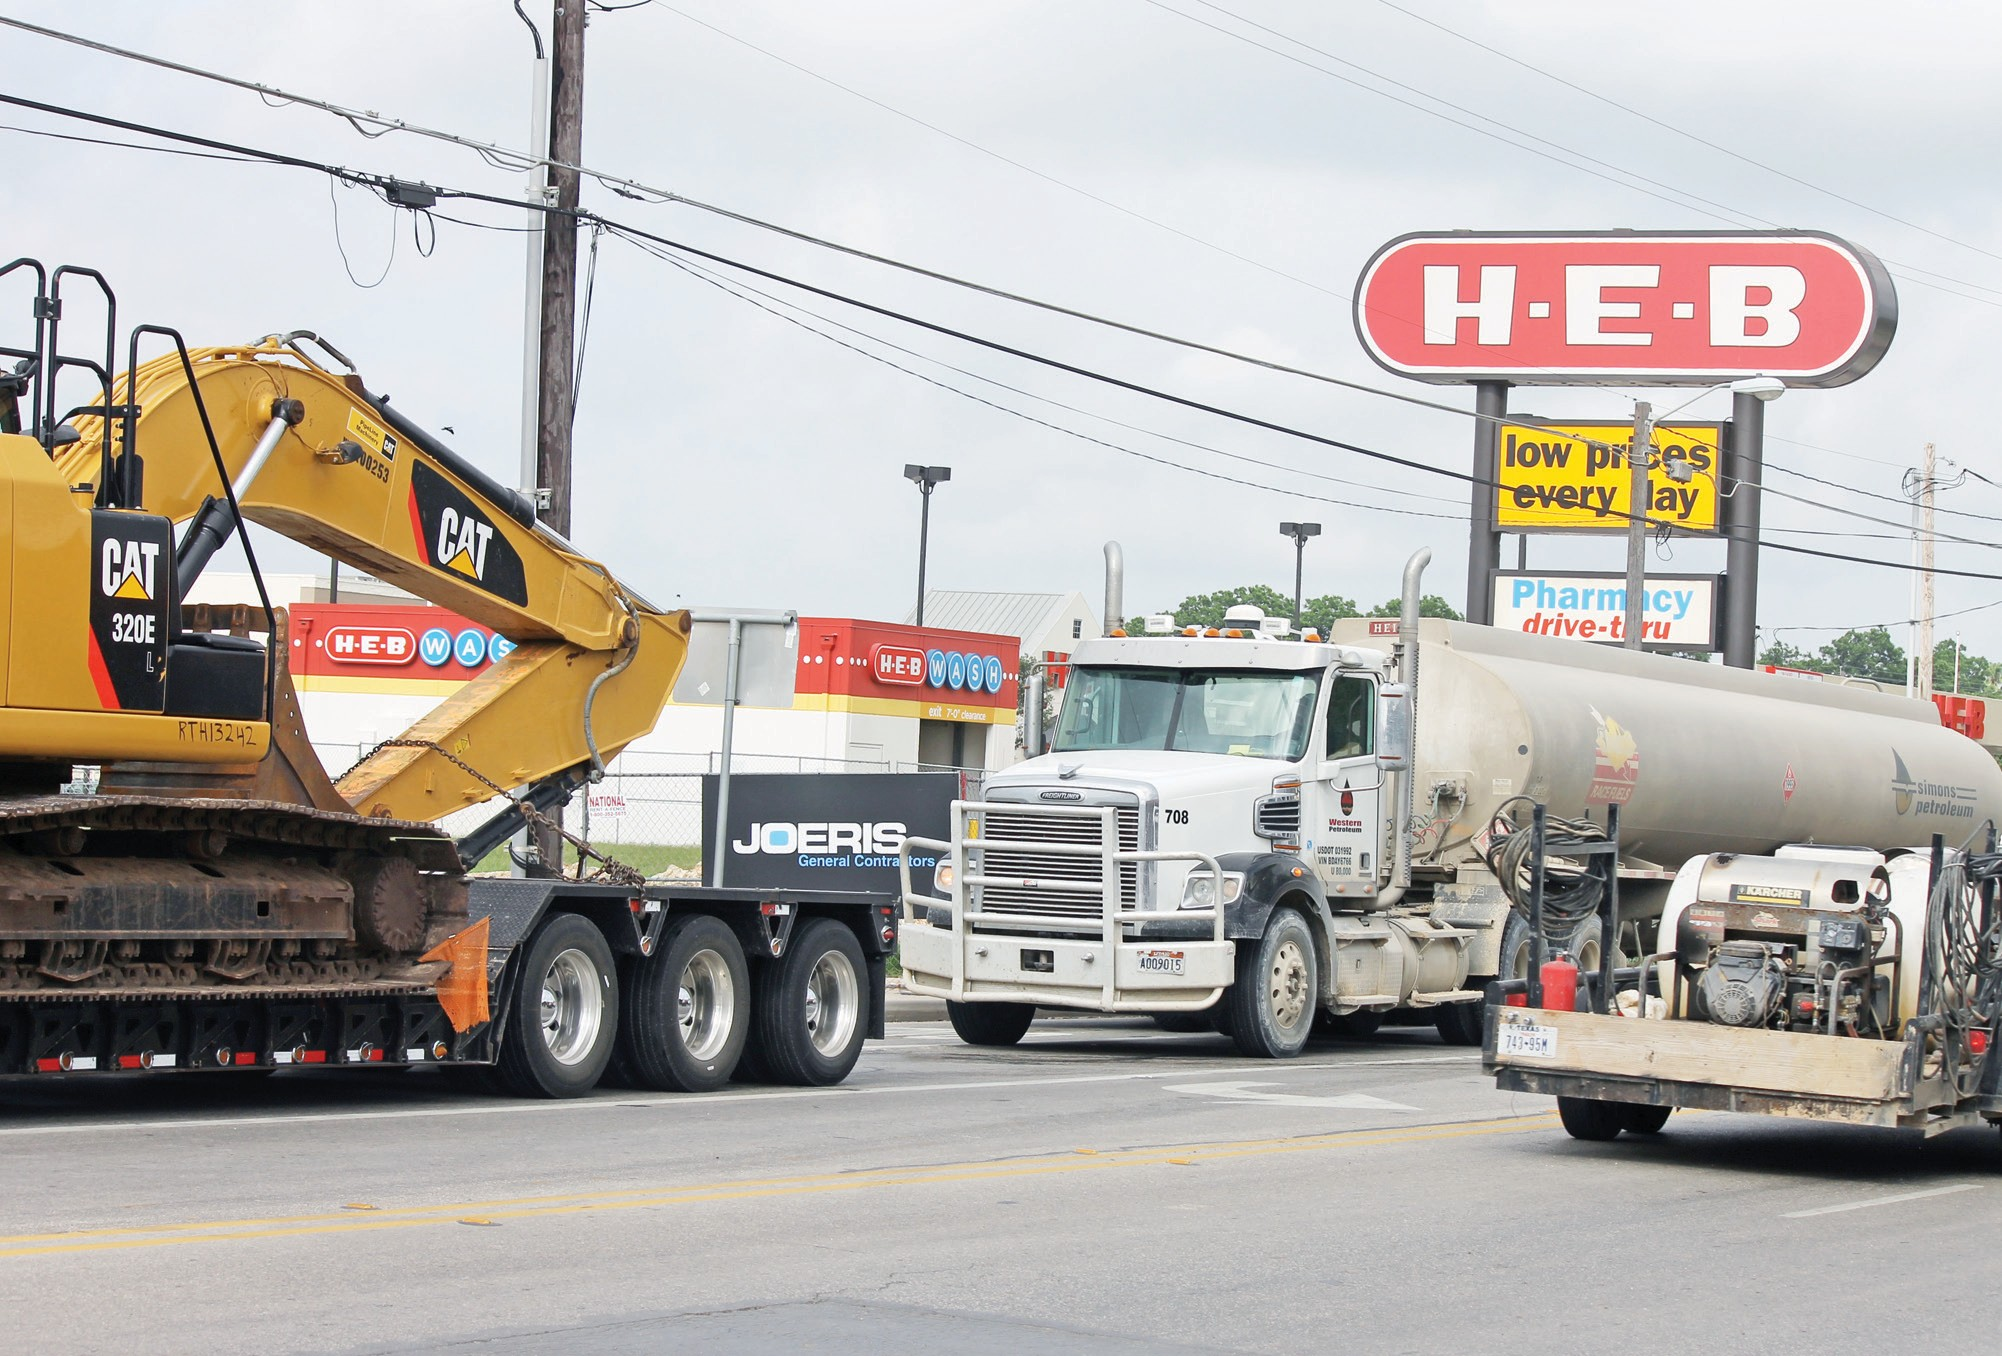 Eagle Ford Shale oil field activity has increased business at H.E.B. in Pleasanton.